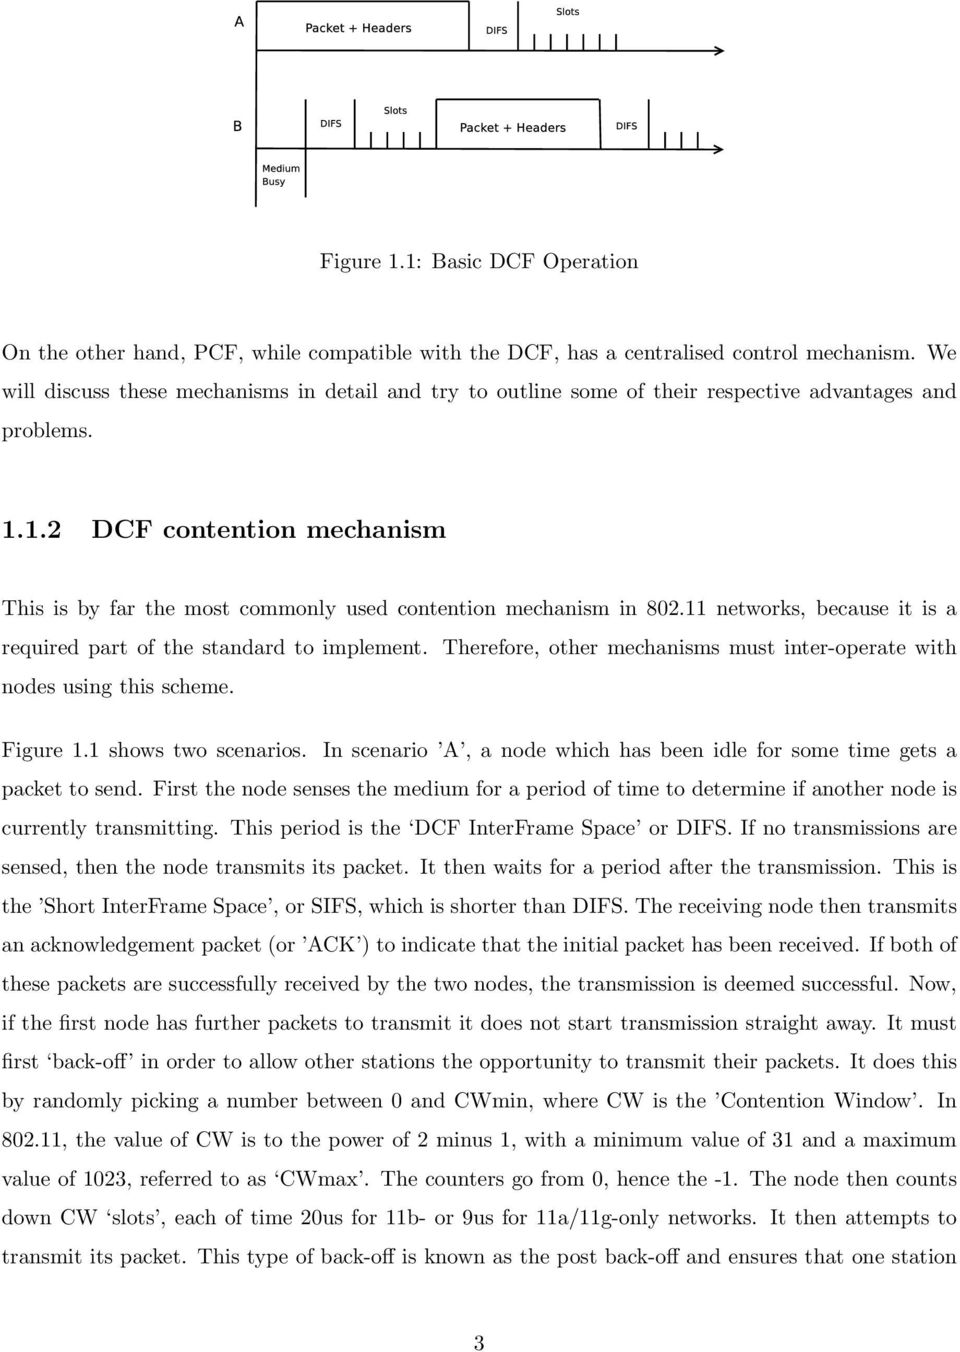 1.2 DCF contention mechanism This is by far the most commonly used contention mechanism in 82.11 networks, because it is a required part of the standard to implement.